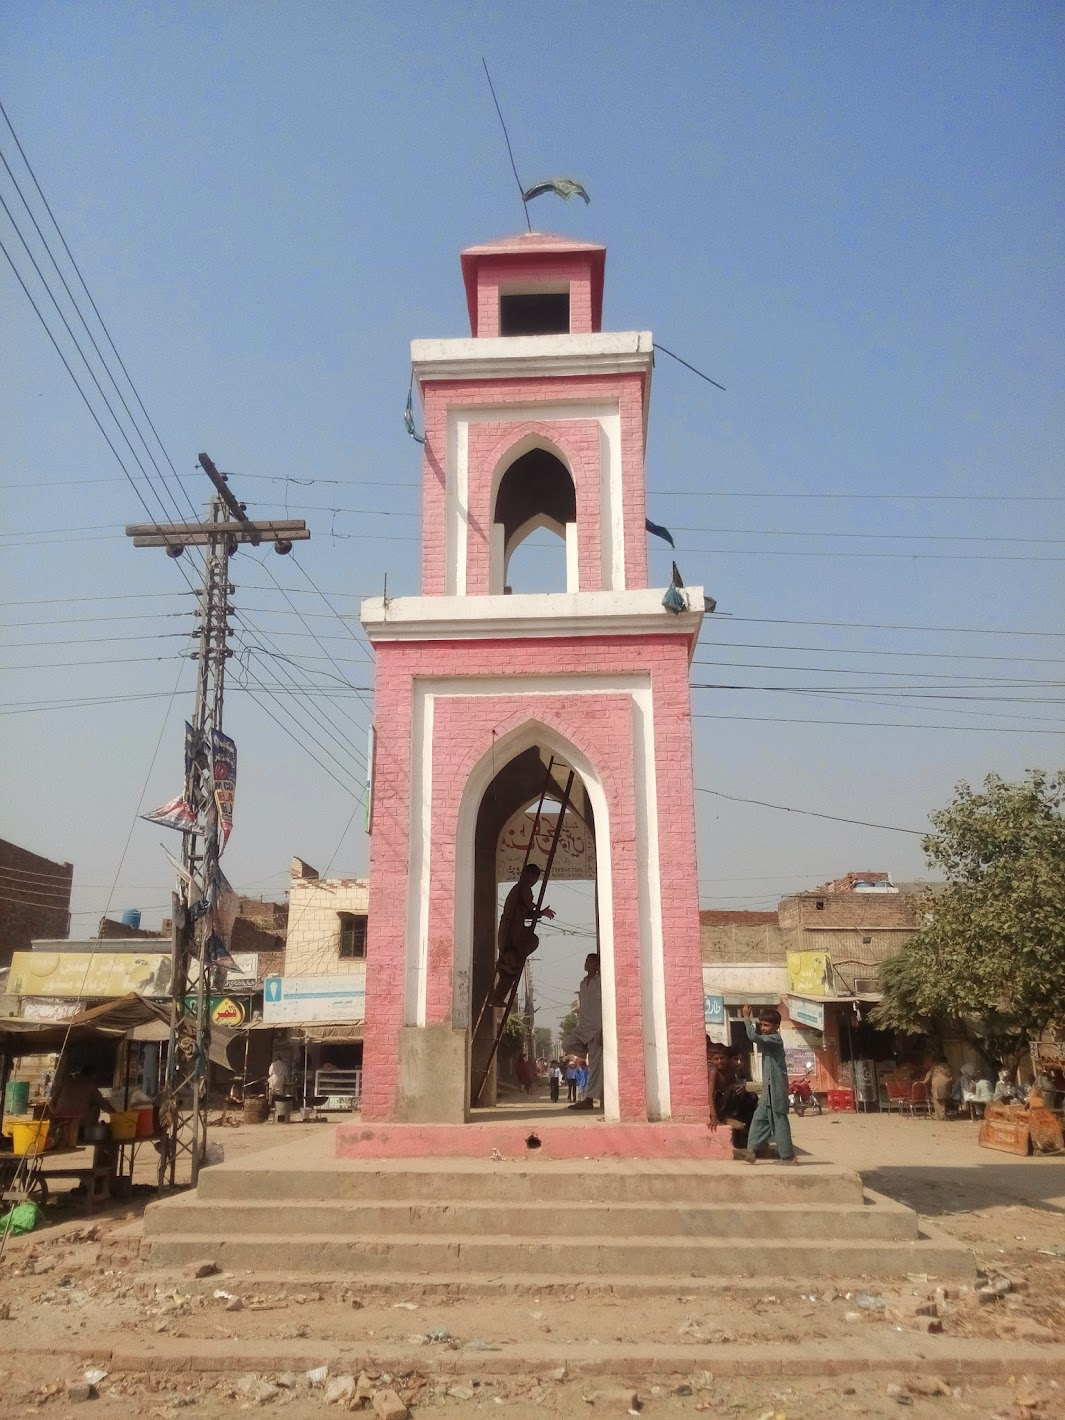 Ghanta Ghar Chowk, Faisalabad downtown is said to have been built on the blue print of Gangapur